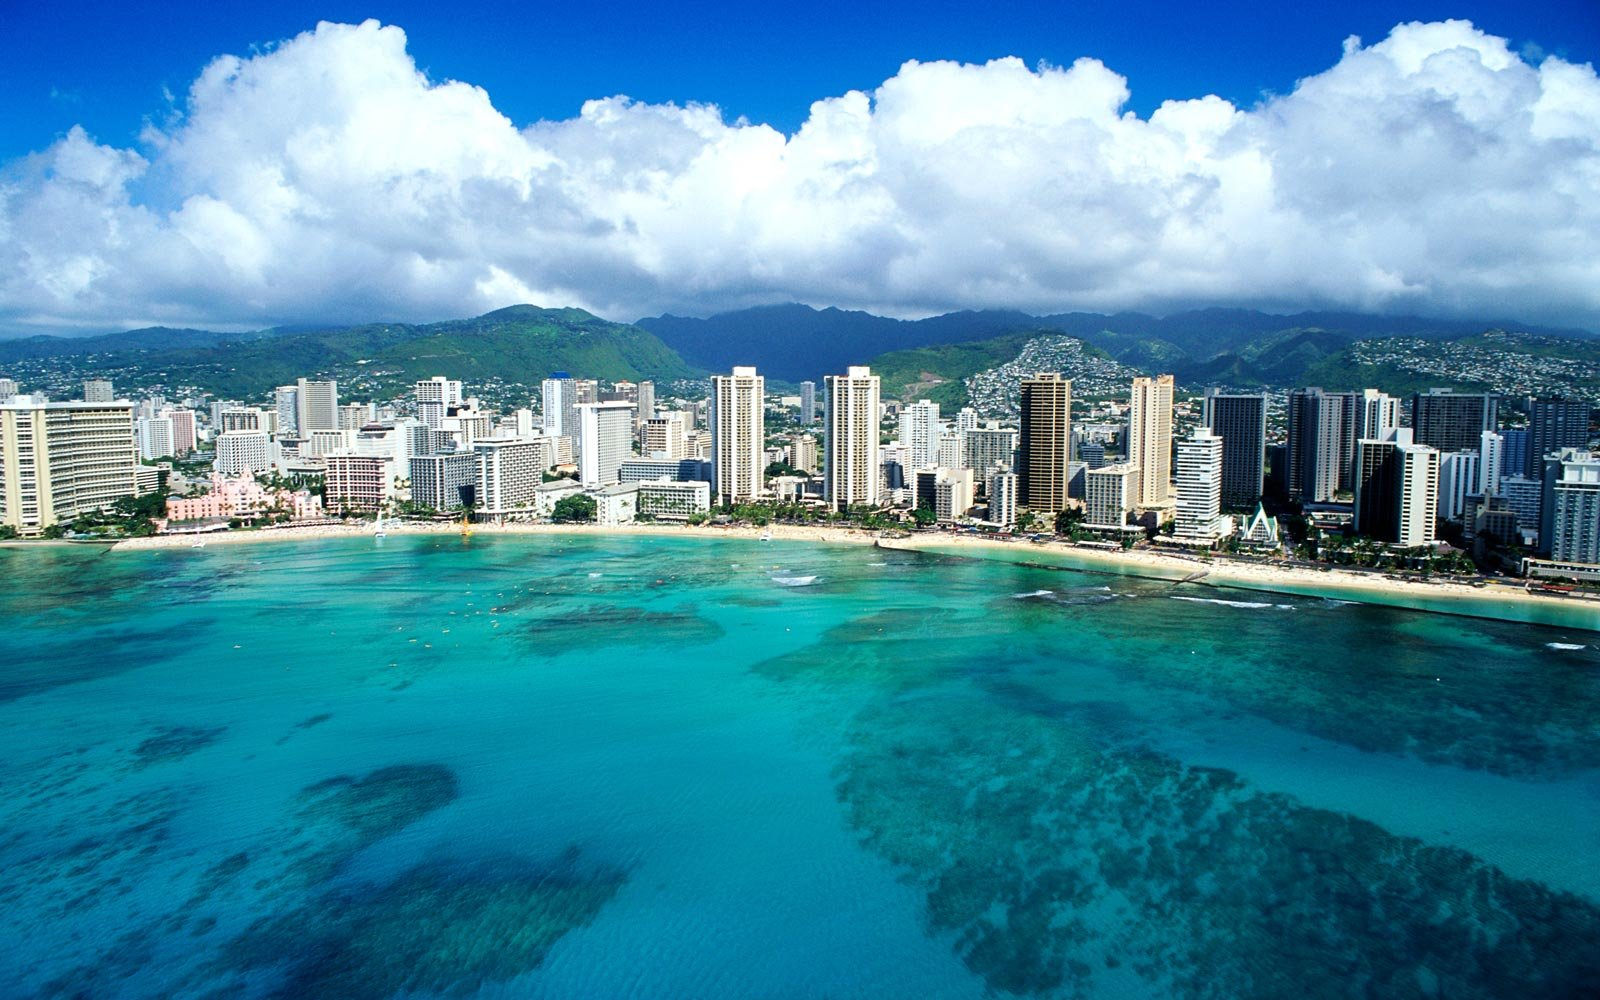 6-honolulu-hawaii-WBUSCITY17.jpg